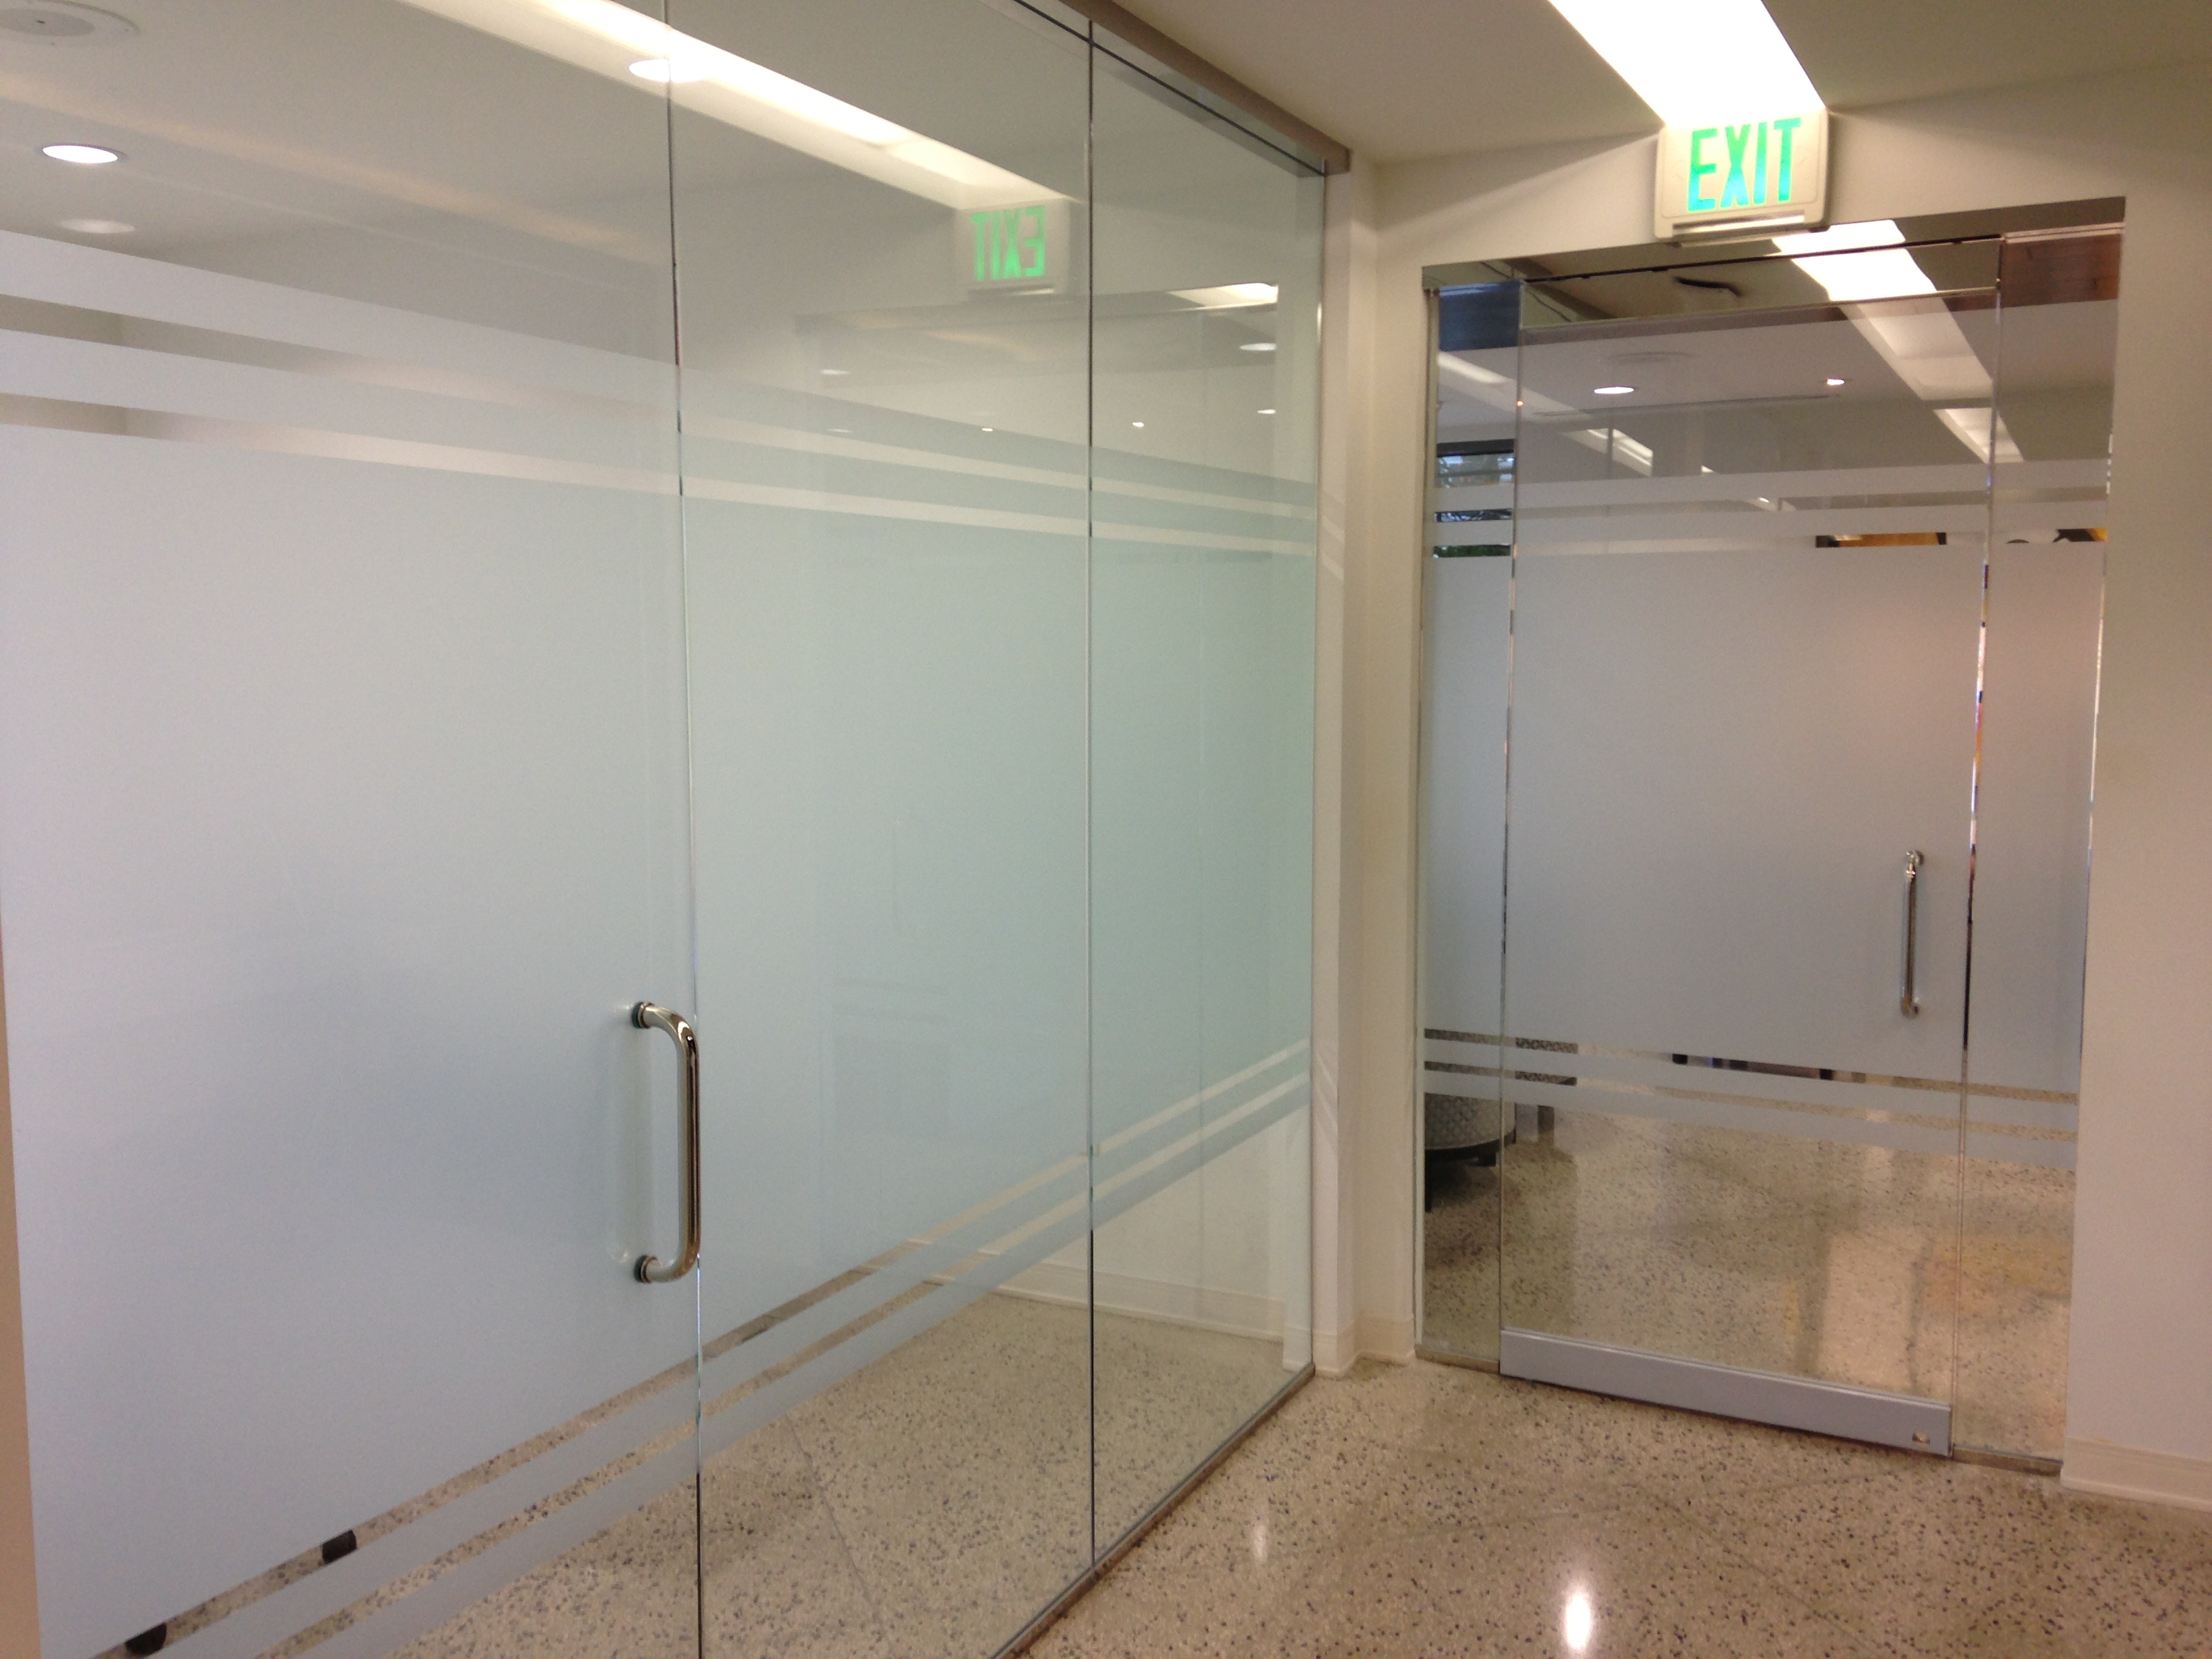 office glass frosting. Decorative Frost Window Film Spruces Up Offices In Dallas TX! Office Glass Frosting F